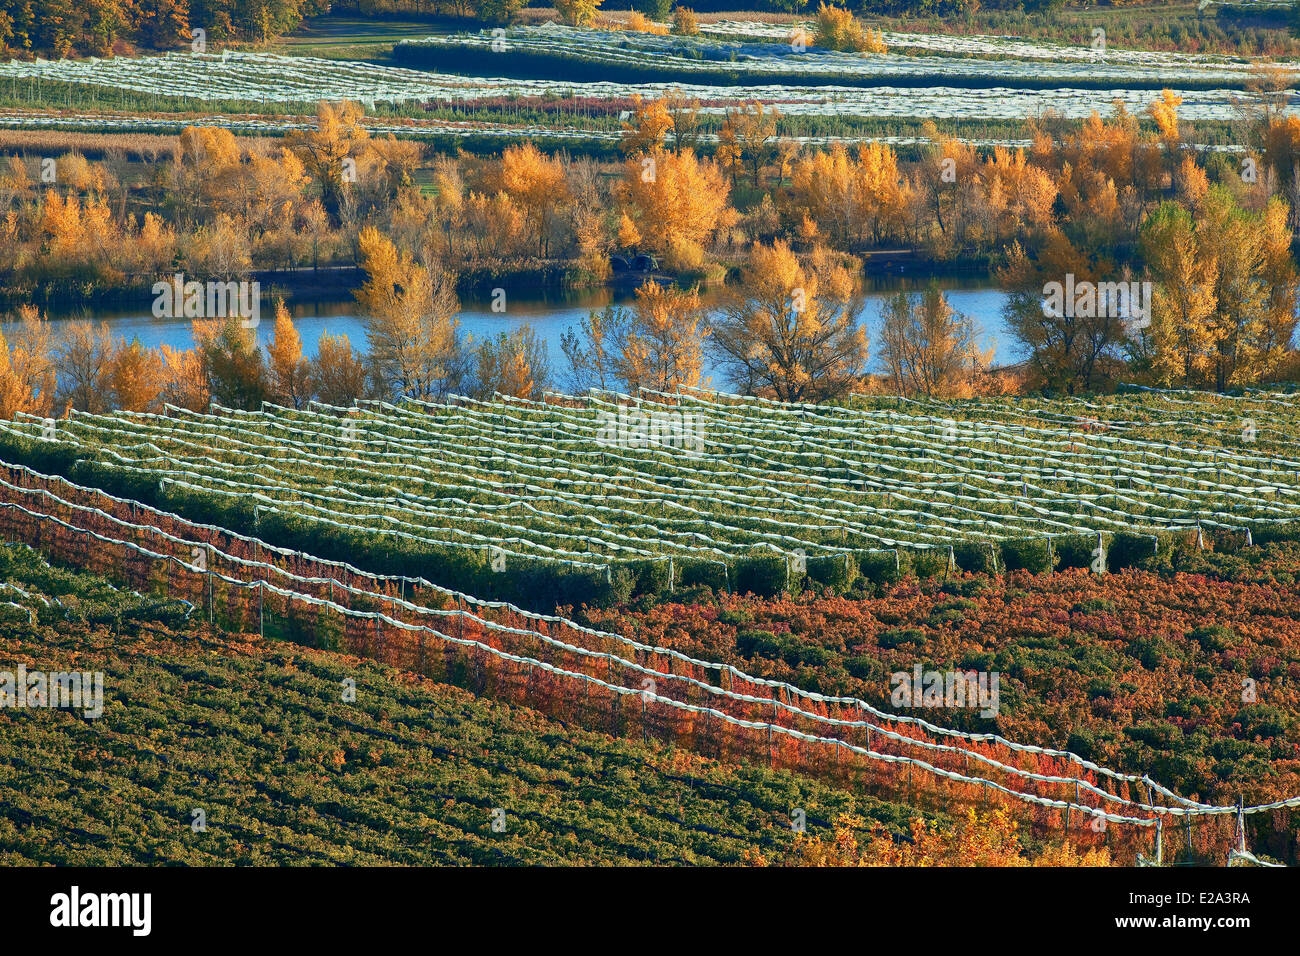 France, Hautes Alpes, Plan Vitrolles, fruit trees and the Durance, Alpes de Haute Provence, in the background - Stock Image